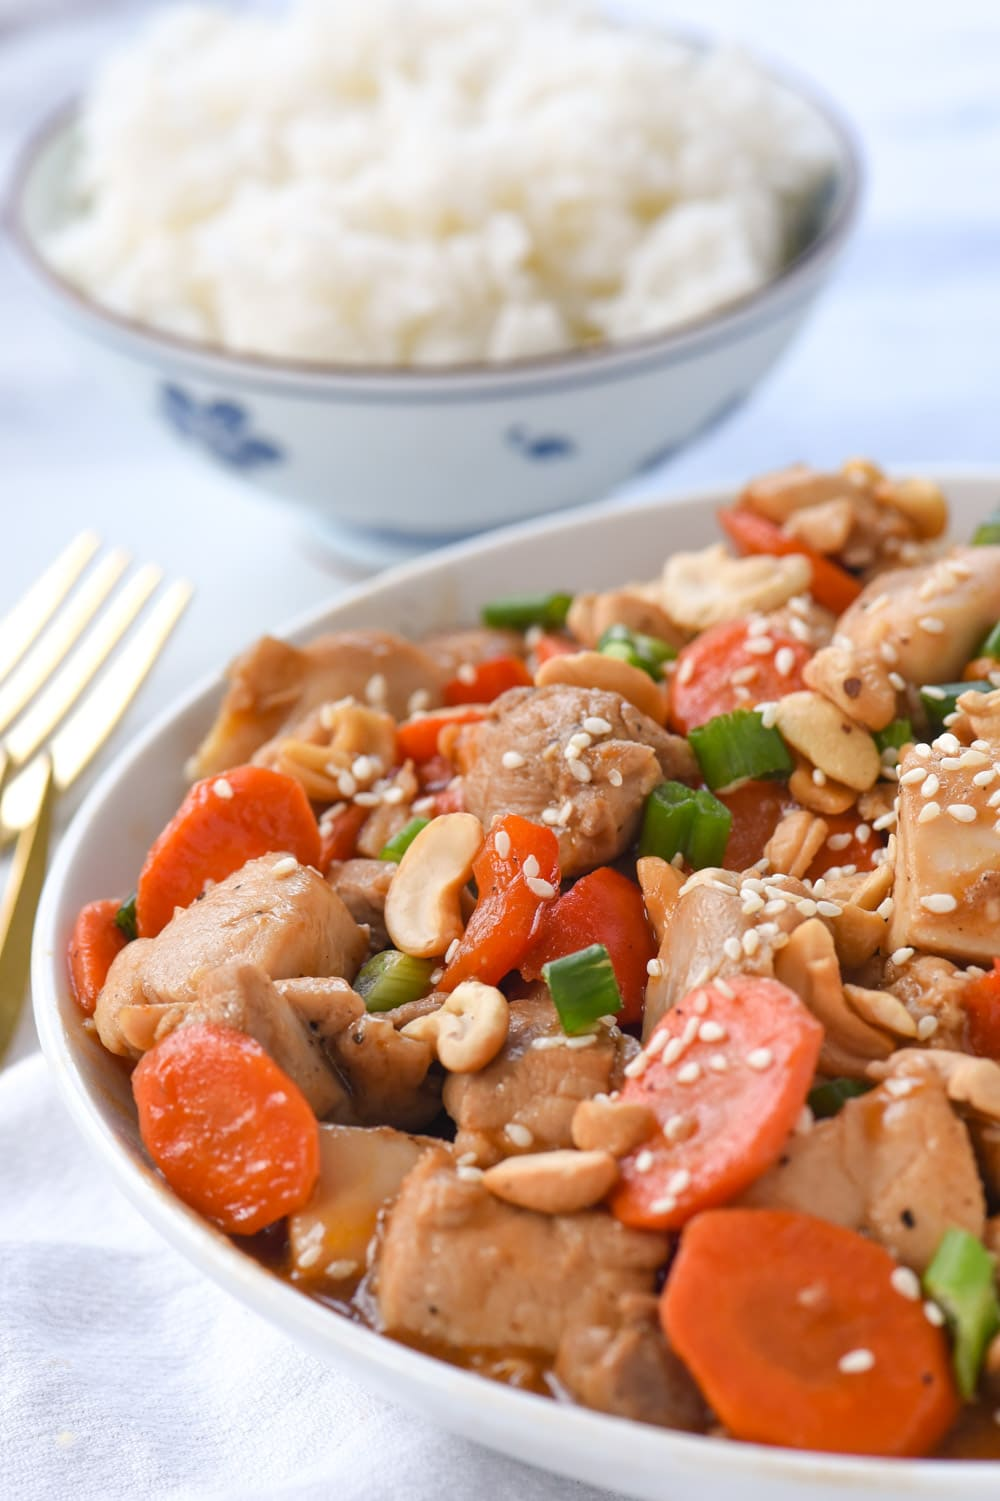 chicken cashew nut stir fry in a bowl with rice